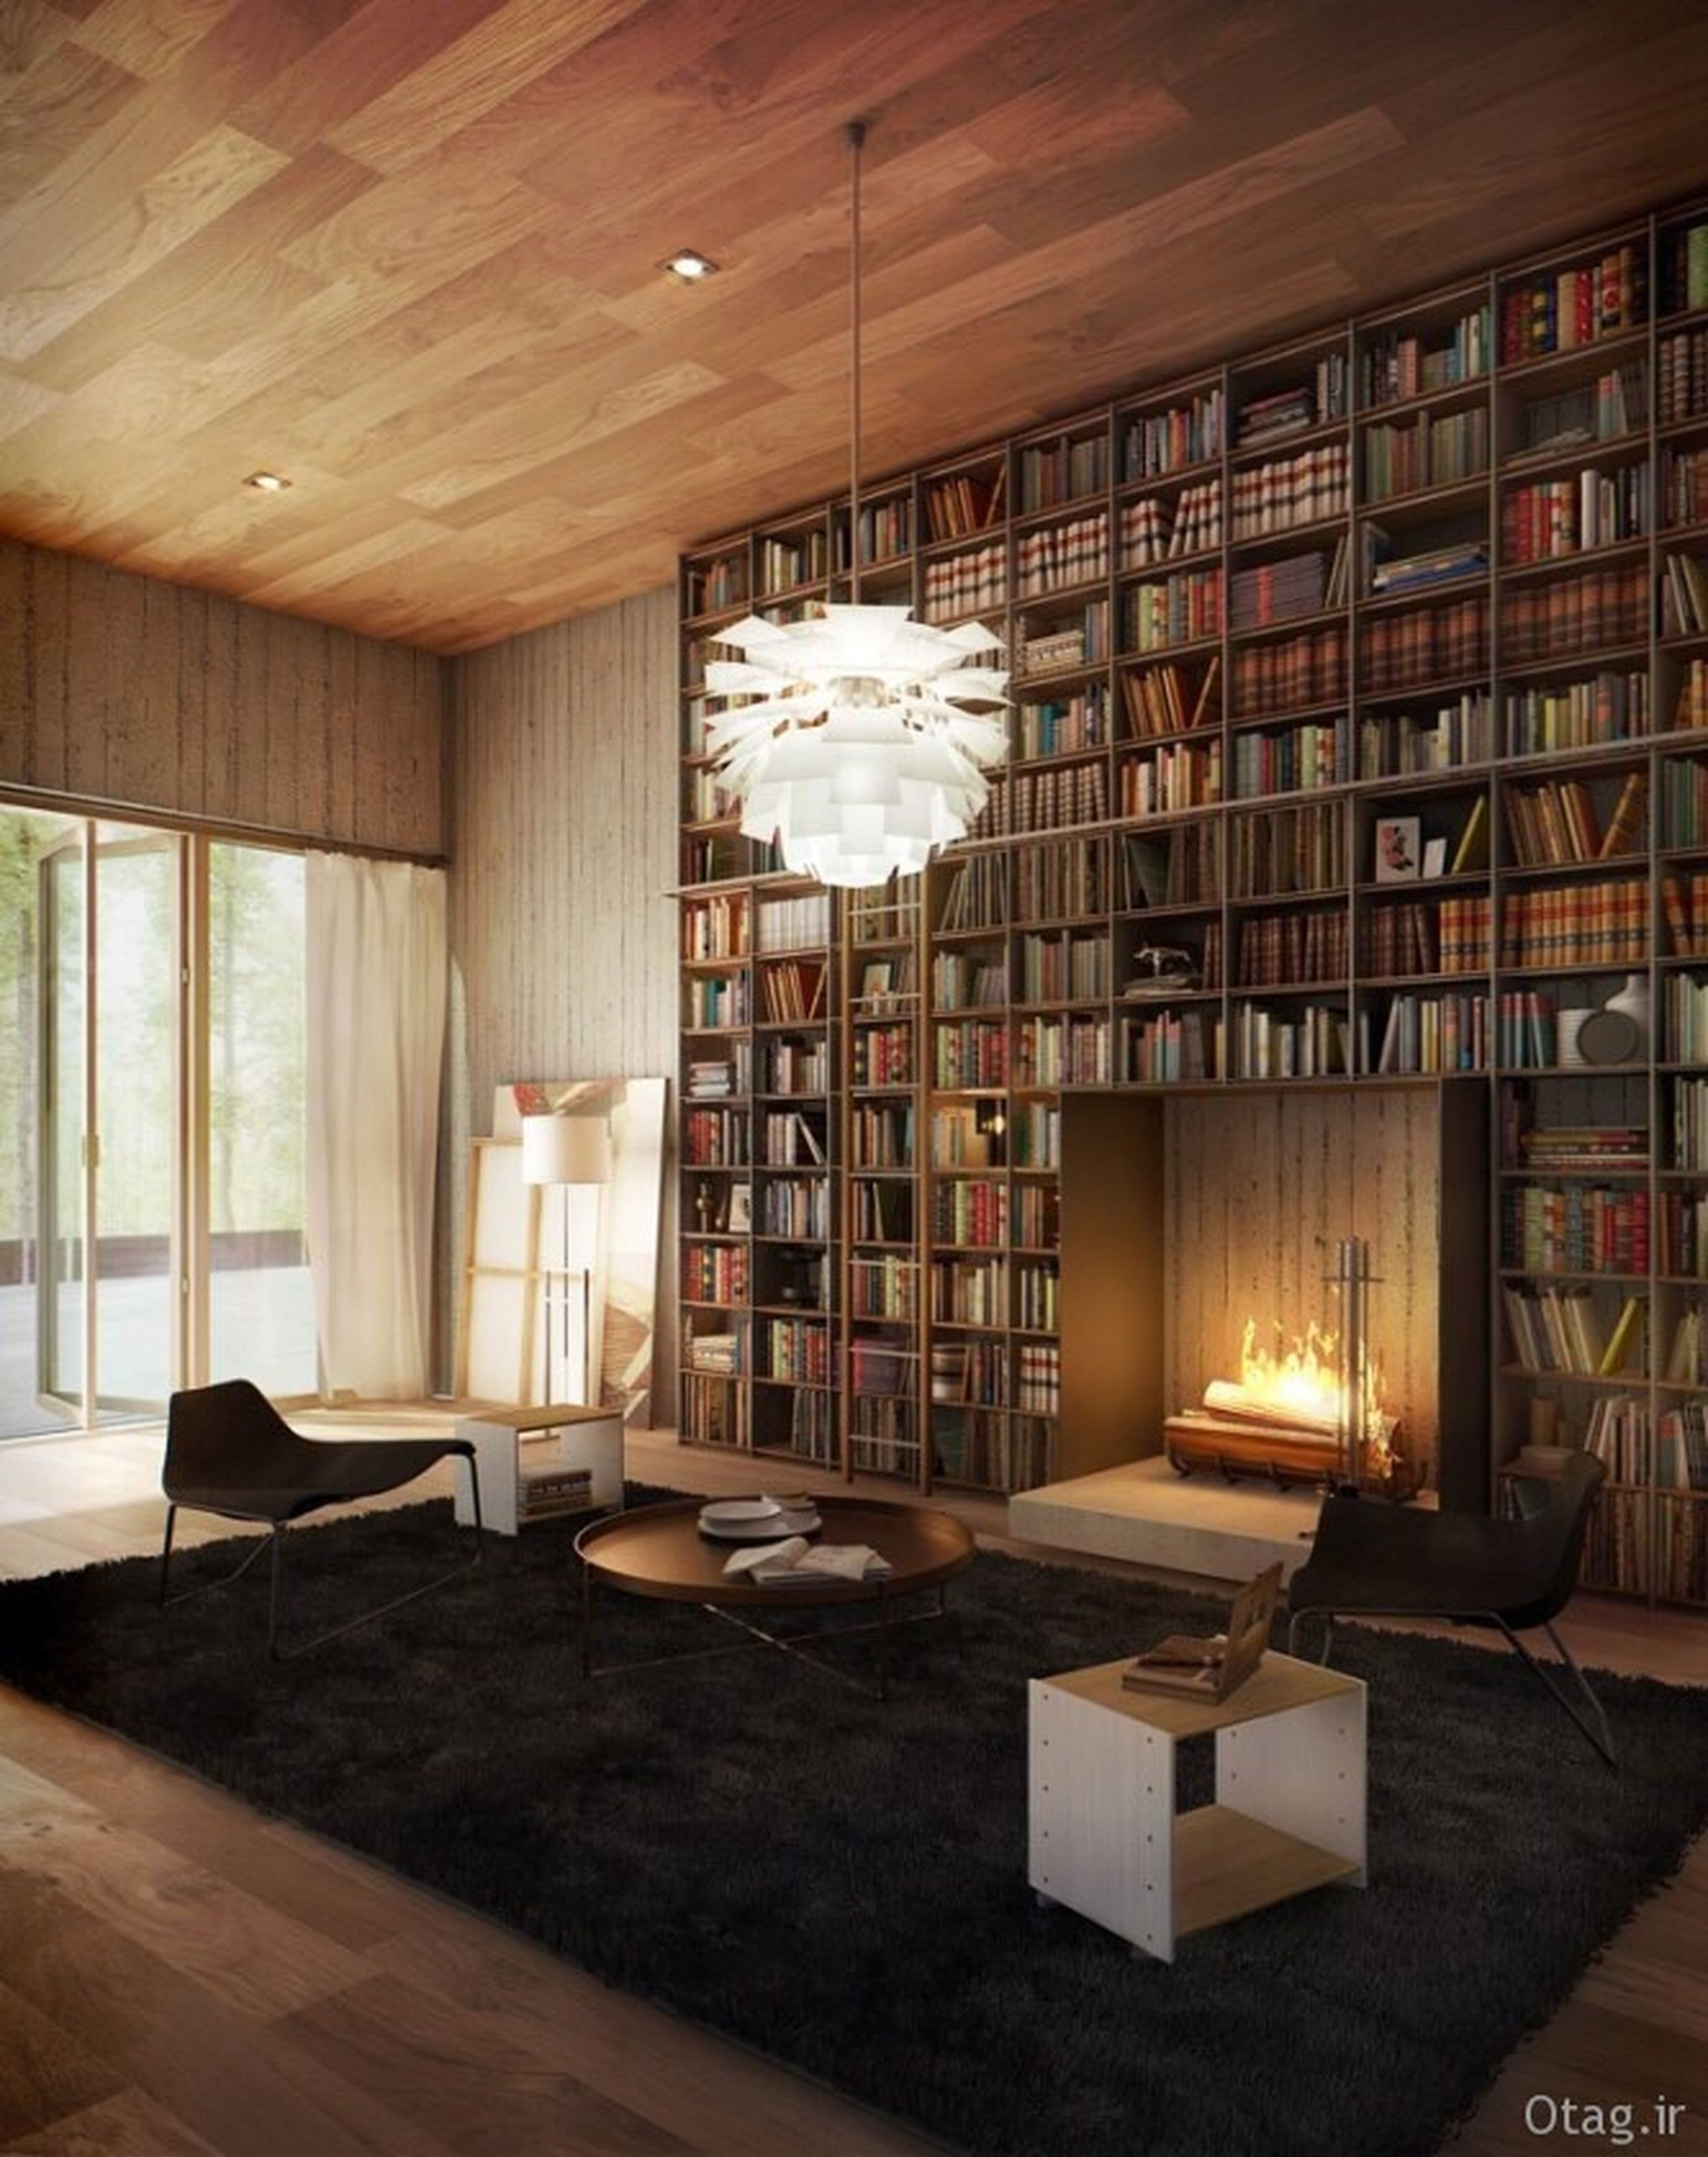 indoors, library, bookshelf, shelf, chair, home interior, no people, architecture, home showcase interior, day